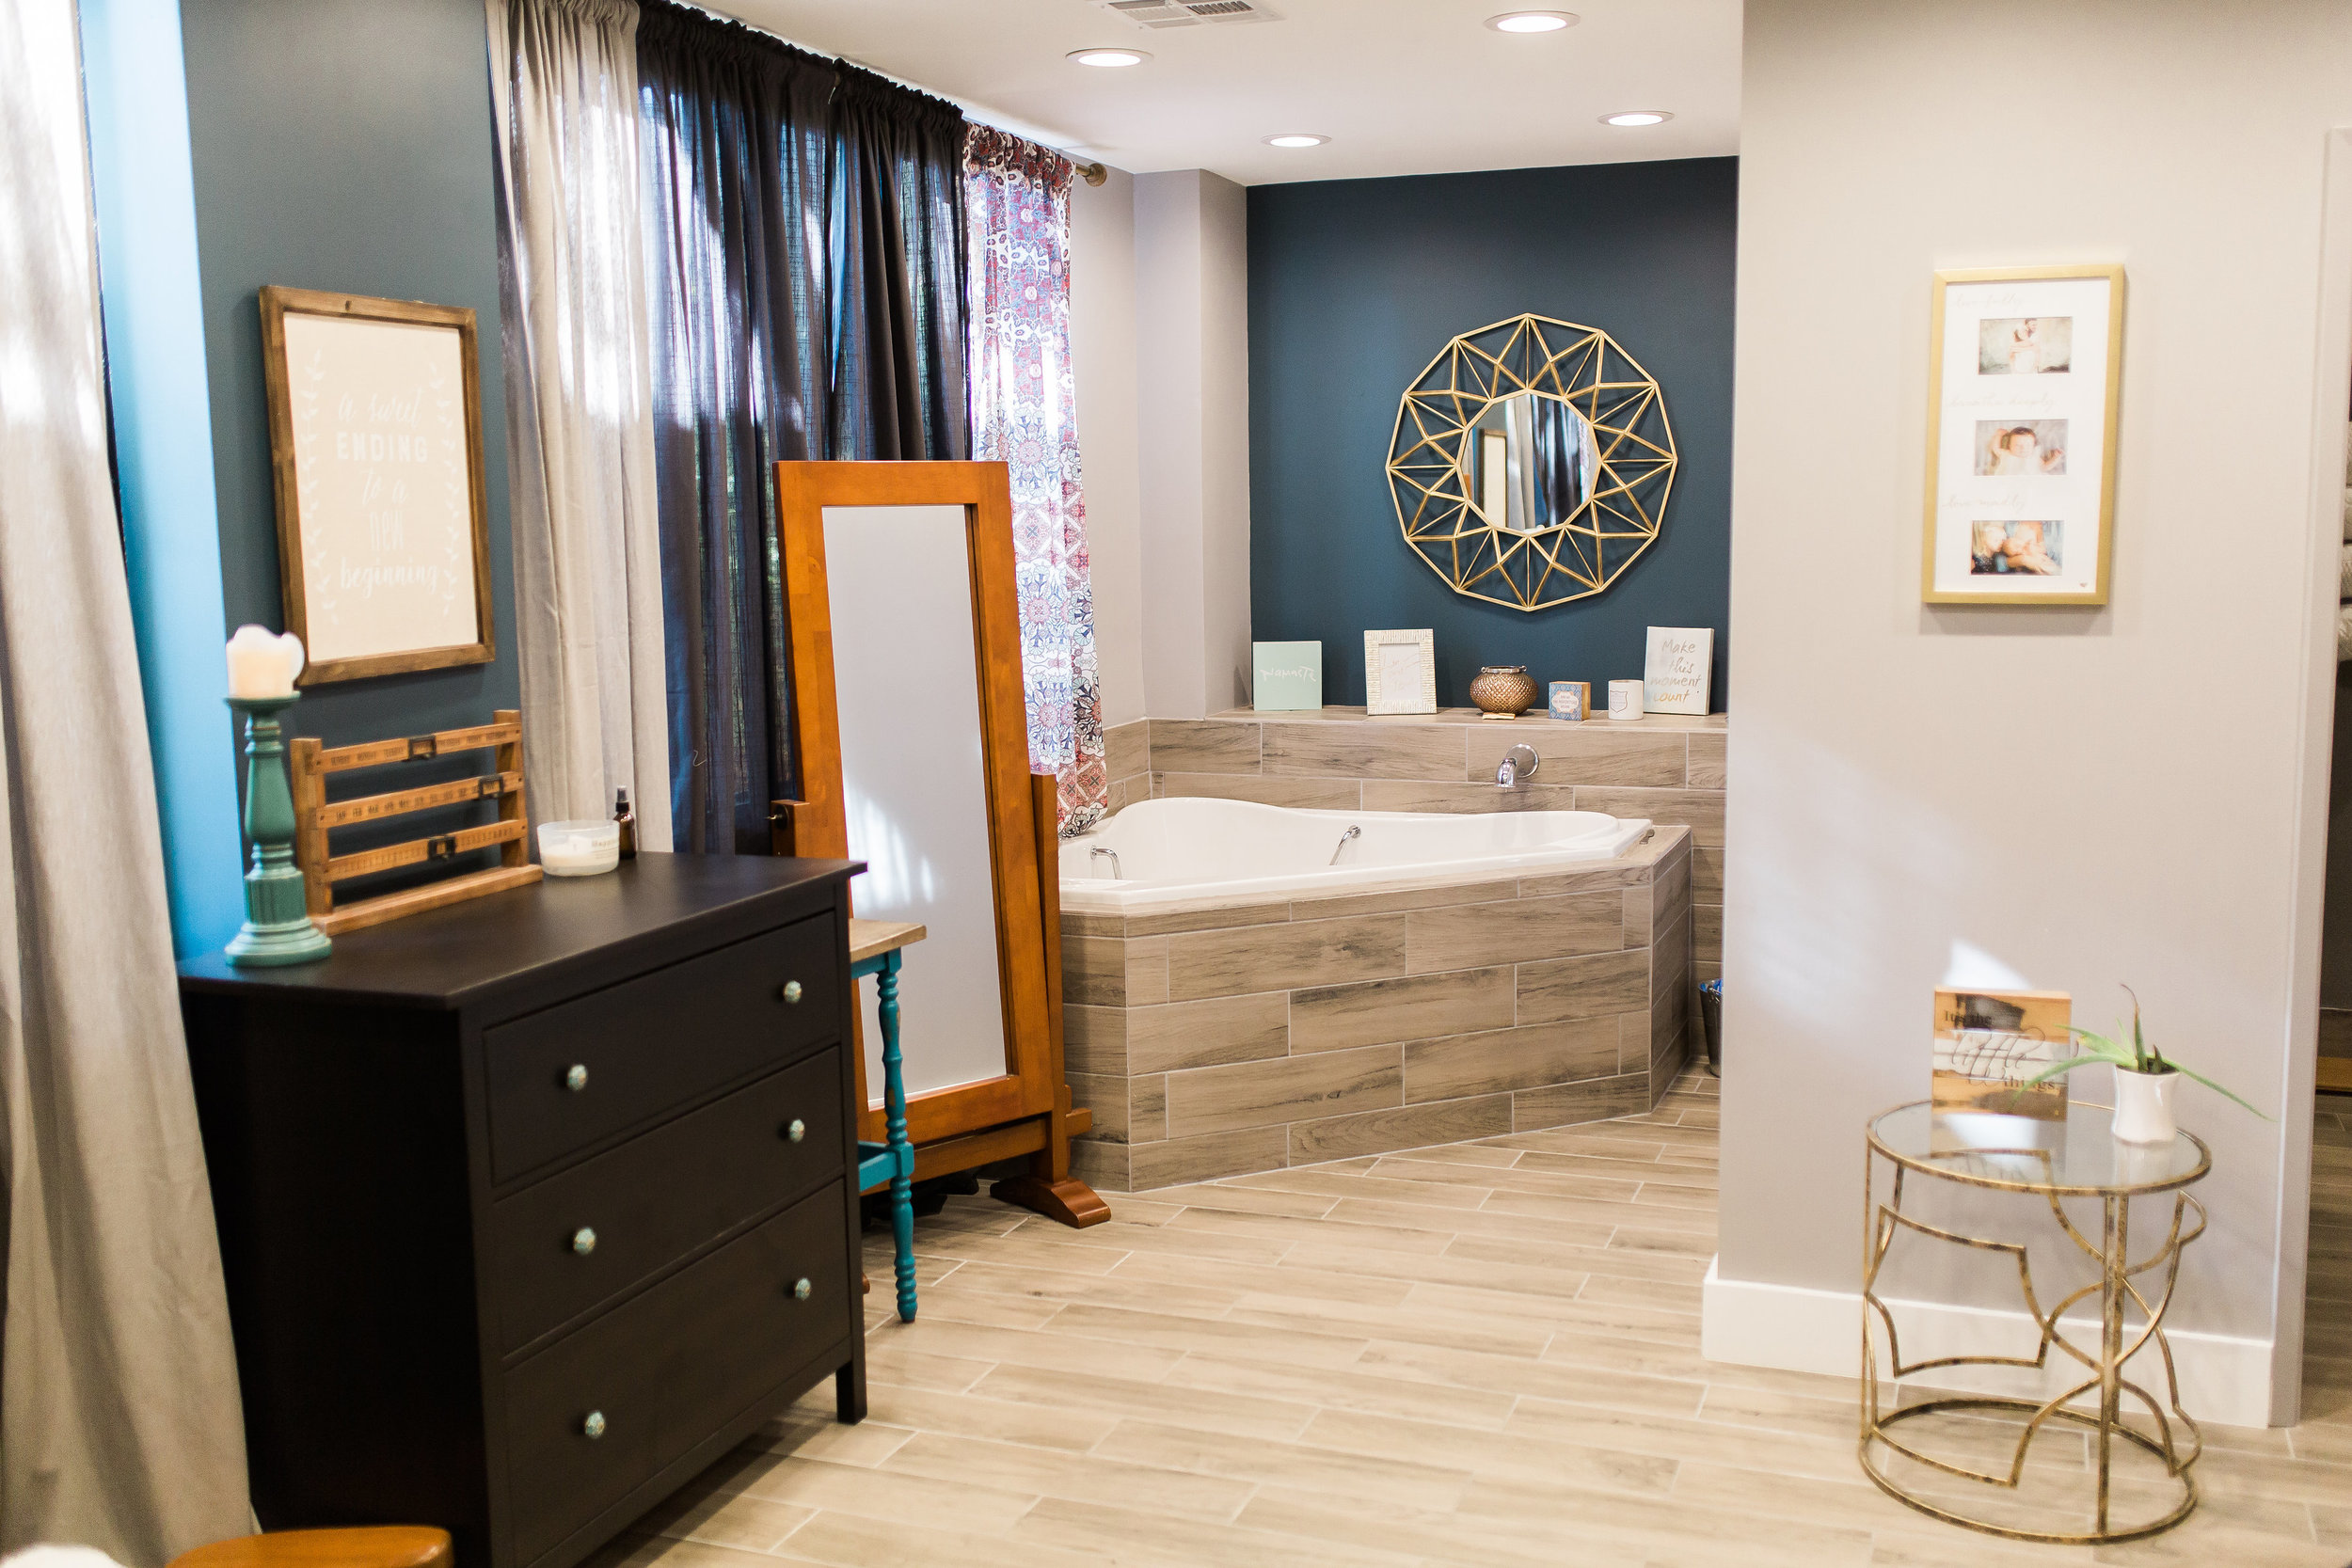 Our Birth Suites are gorgeous with all the amenities to provide comfort during your birth experience with us! -